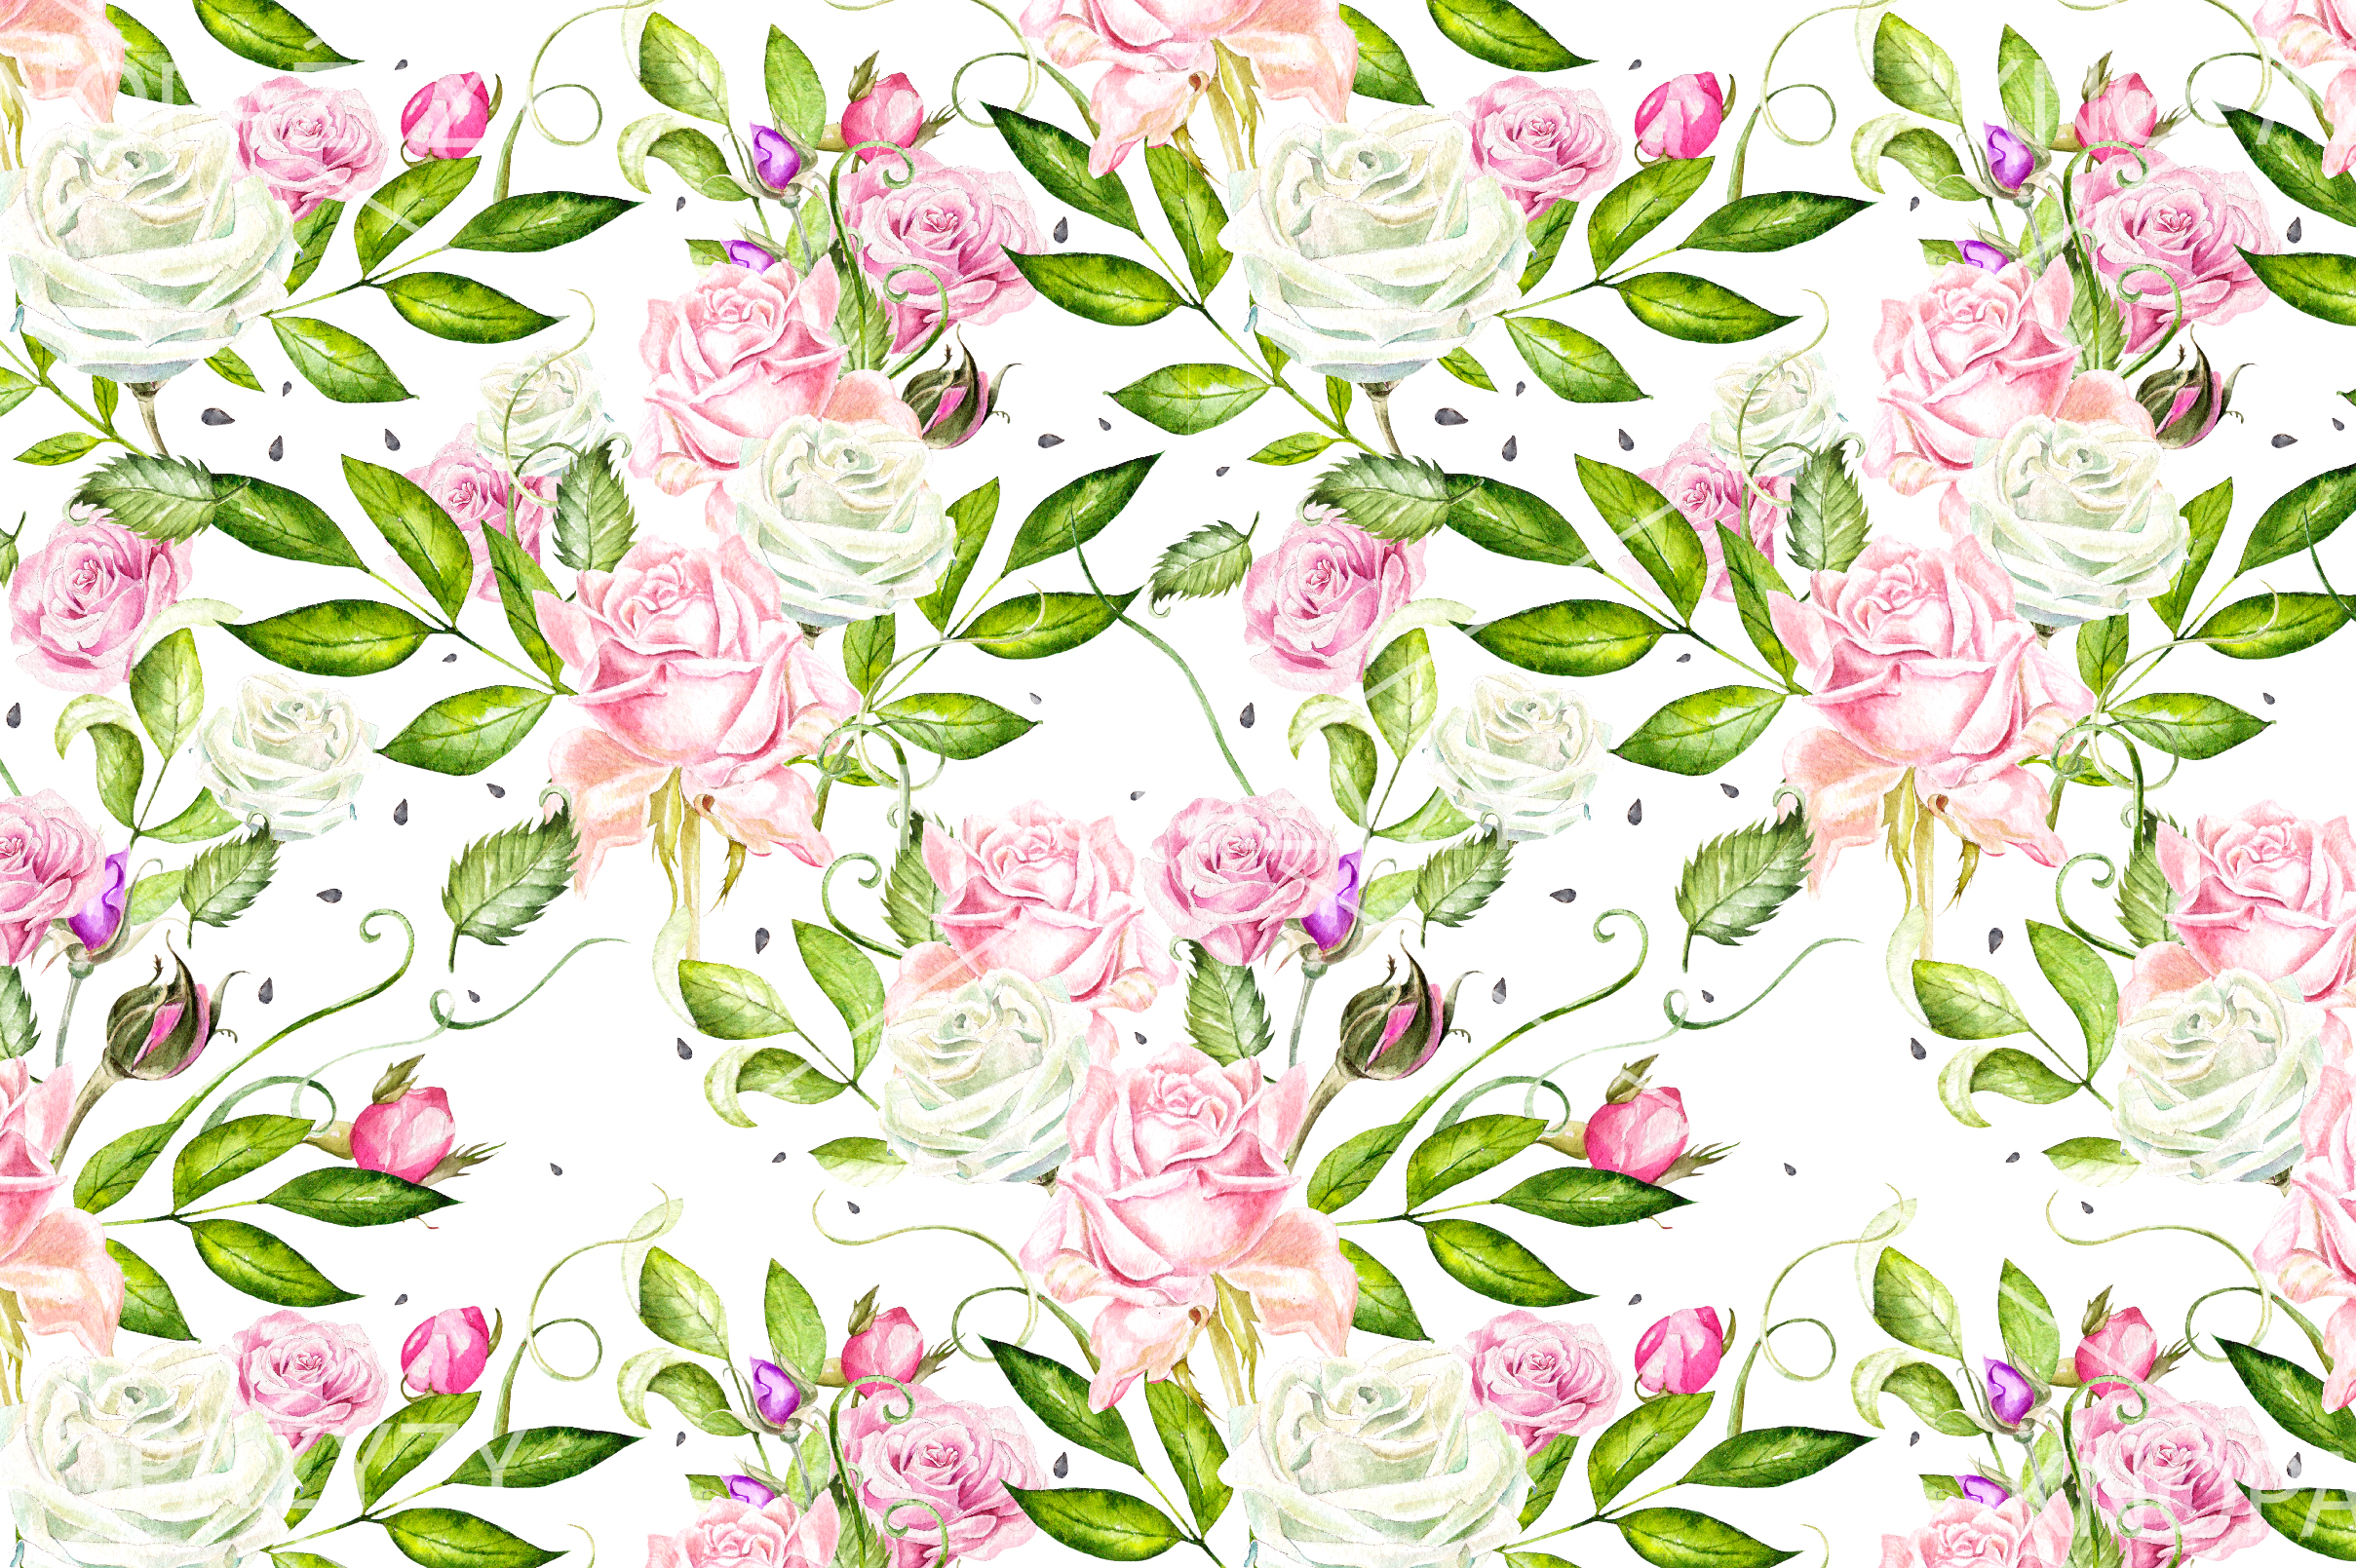 15 Hand Drawn Watercolor PATTERNS example image 7